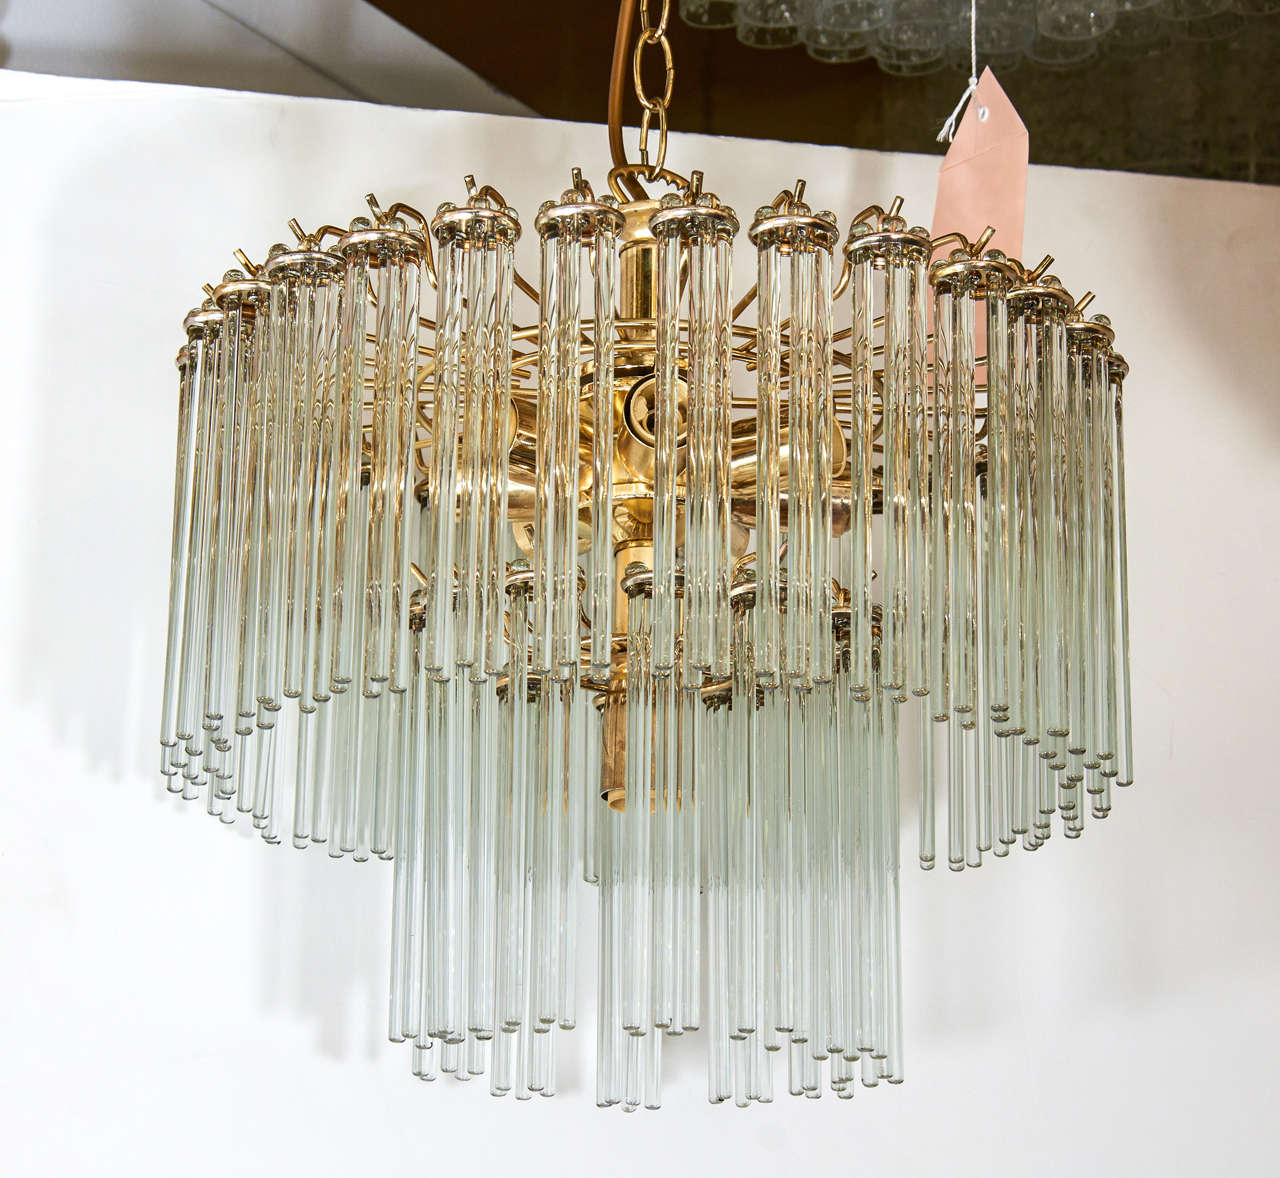 A Vintage Two Tier Chandelier With Thin Glass Rods Suspended From Brass Frame